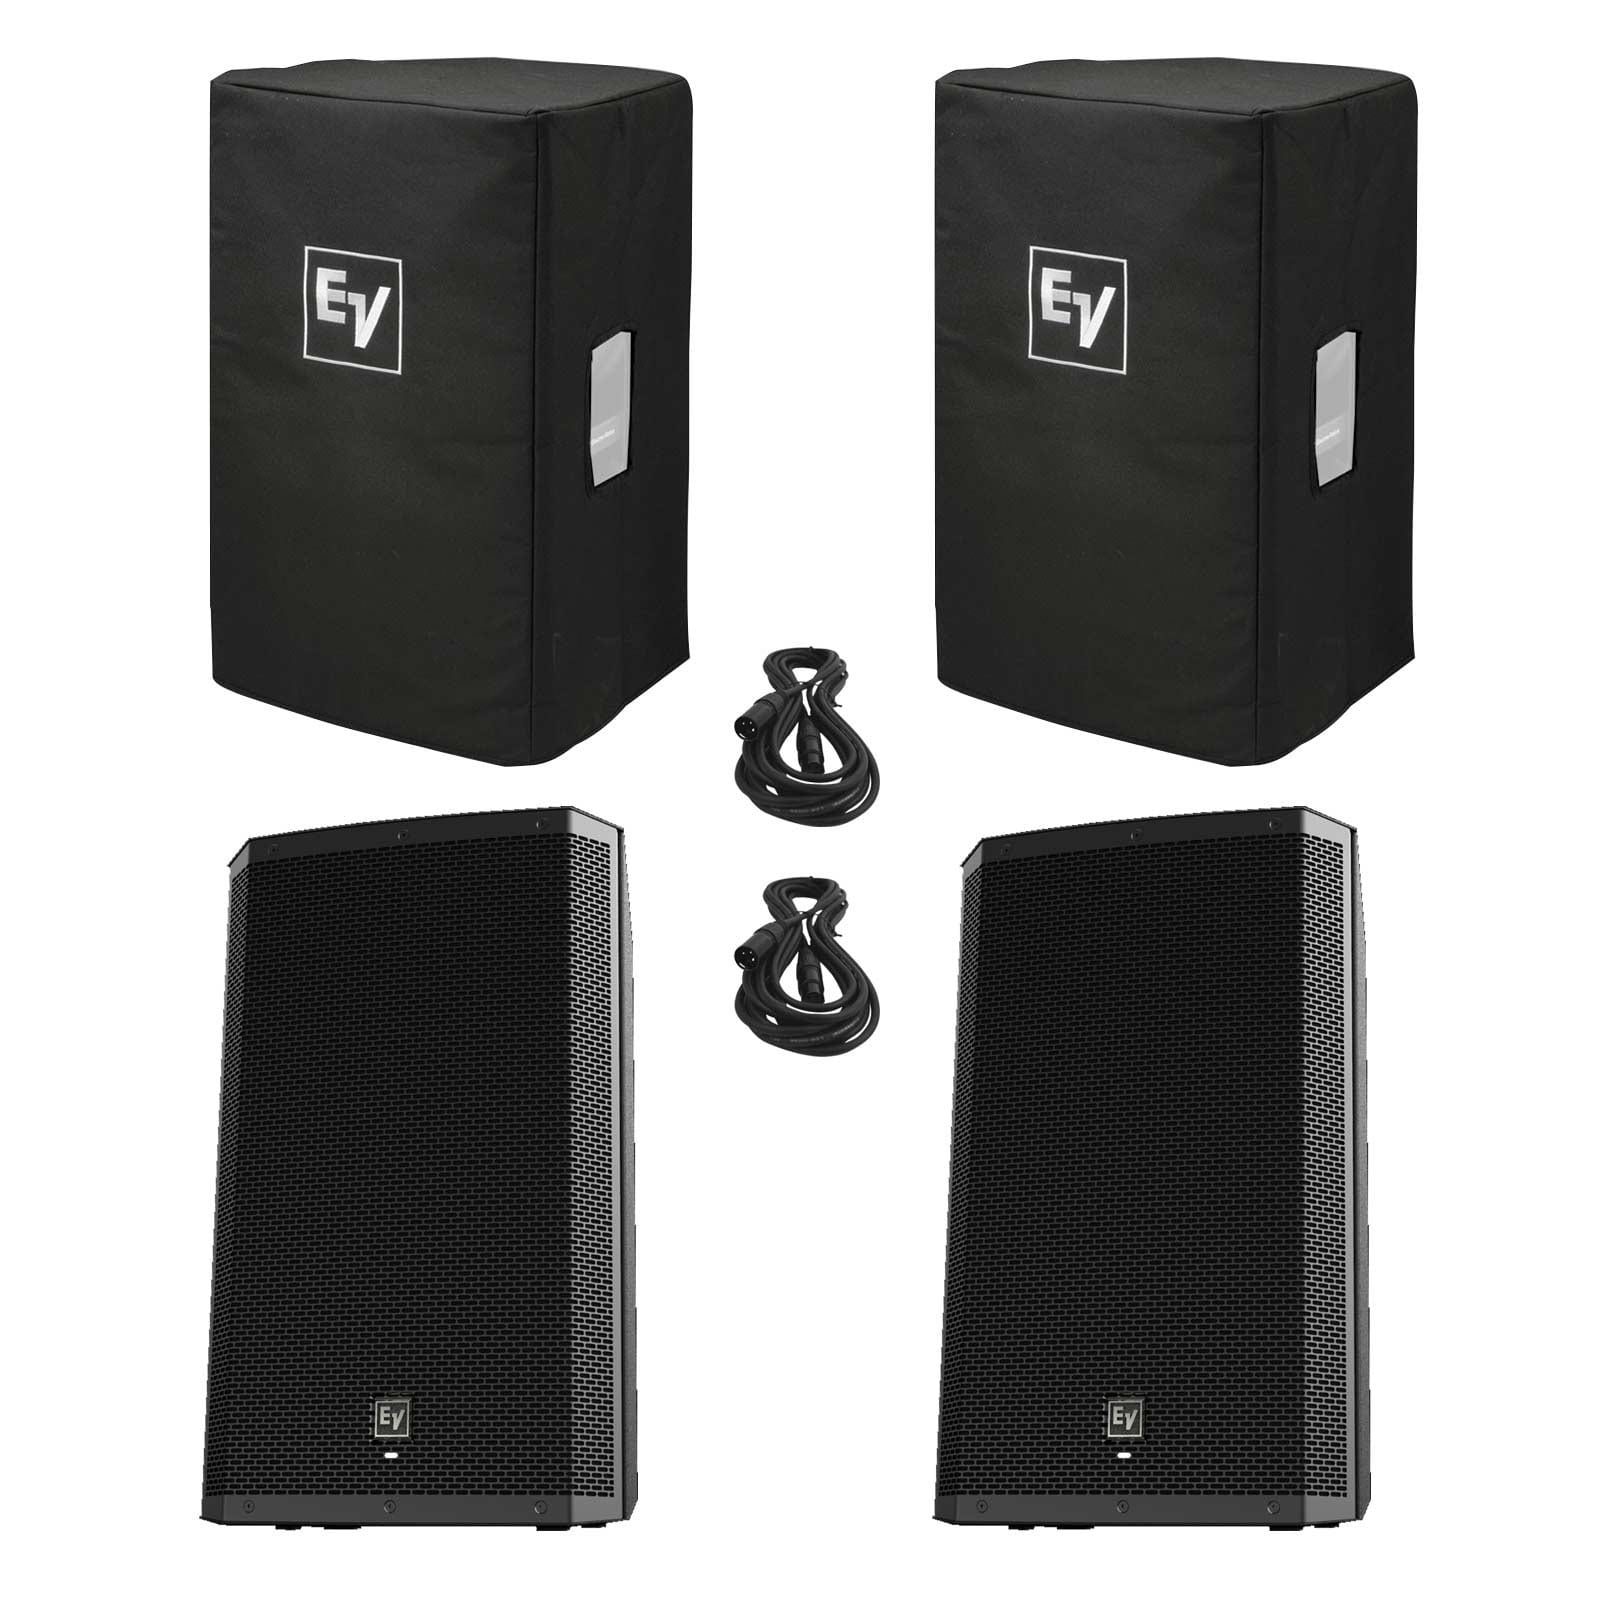 2-electro-voice-zlx-15p-15-powered-loudspeakers-packaged-with-padded-speaker-covers-43e